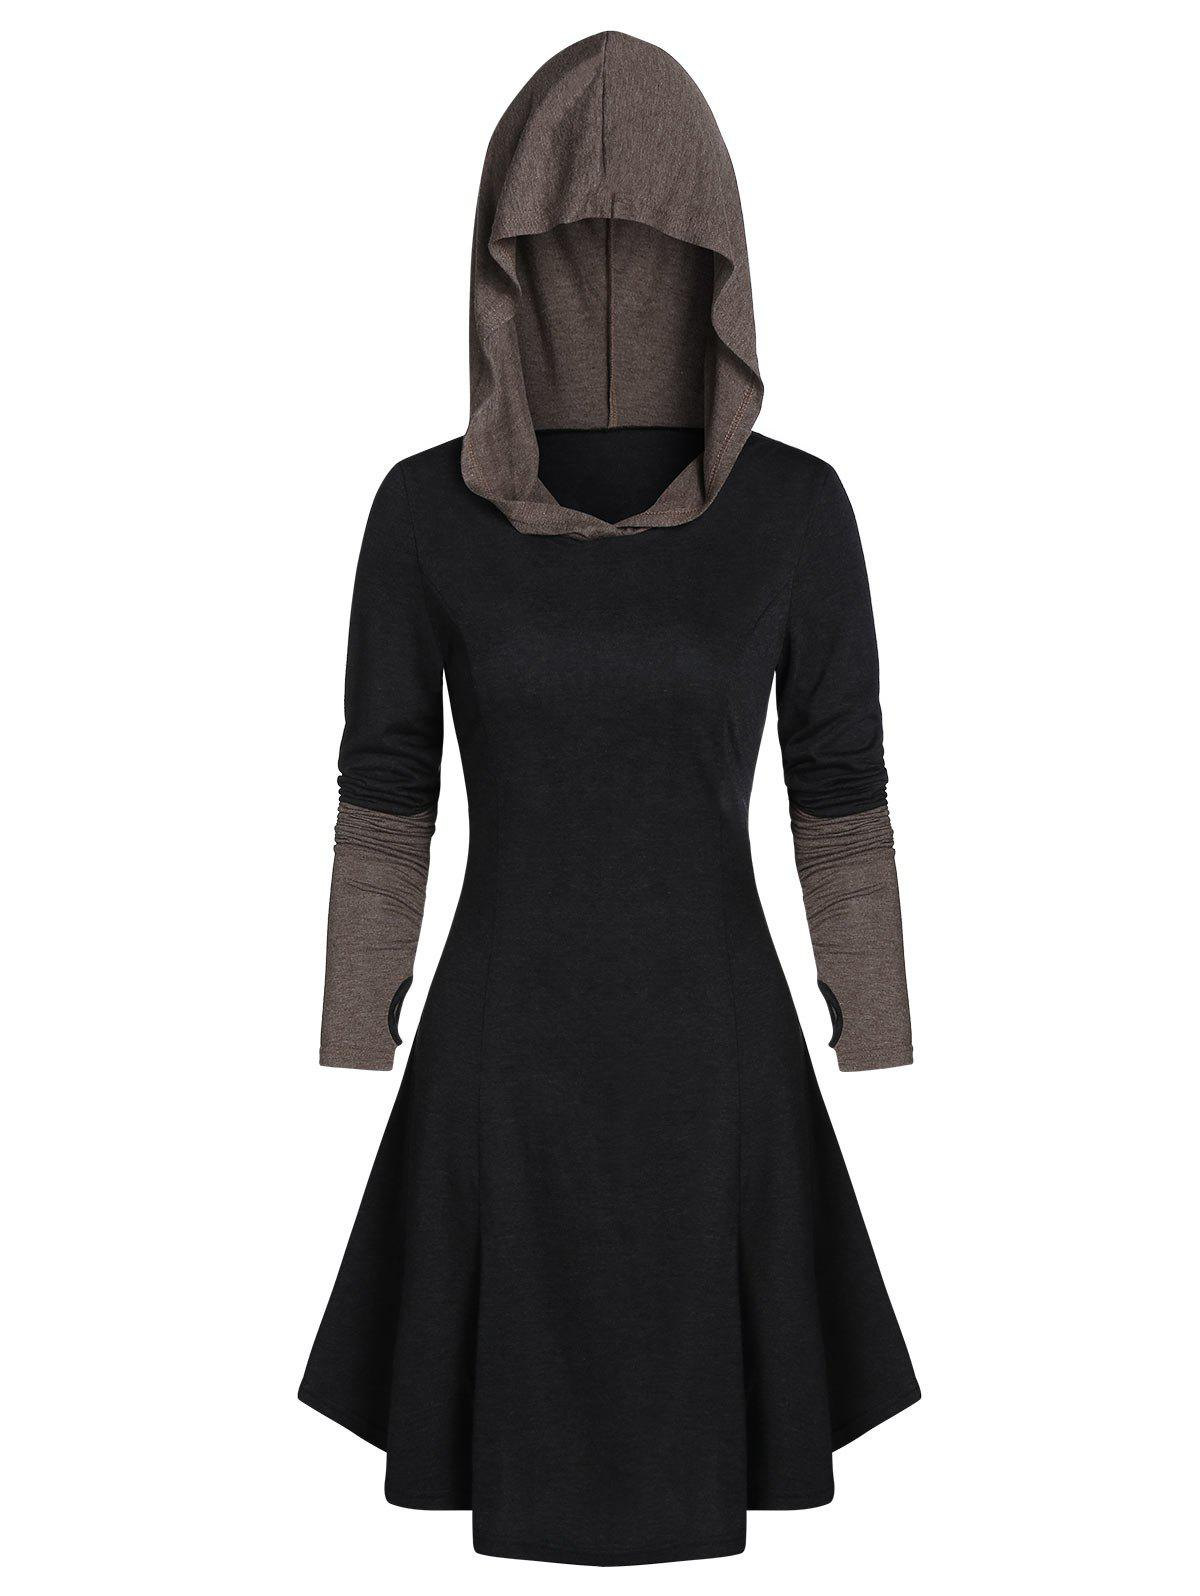 Hooded Glove Sleeve Lace-up Contrast Flare Dress - DARK SLATE GREY XL